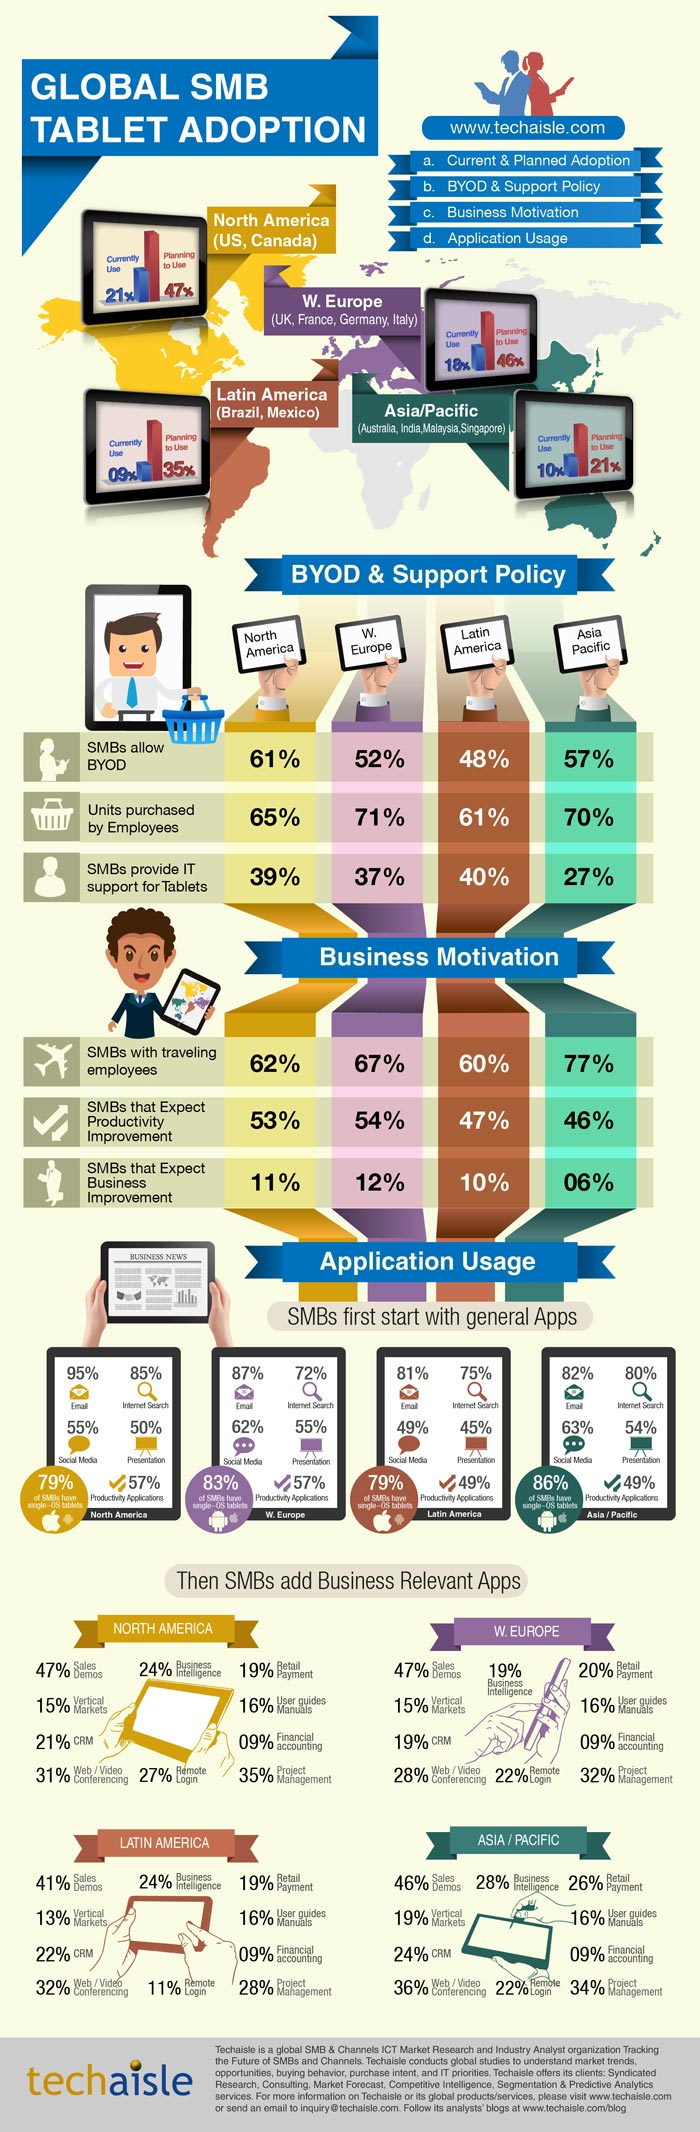 techaisle-smb-tablet-adoption-infographic